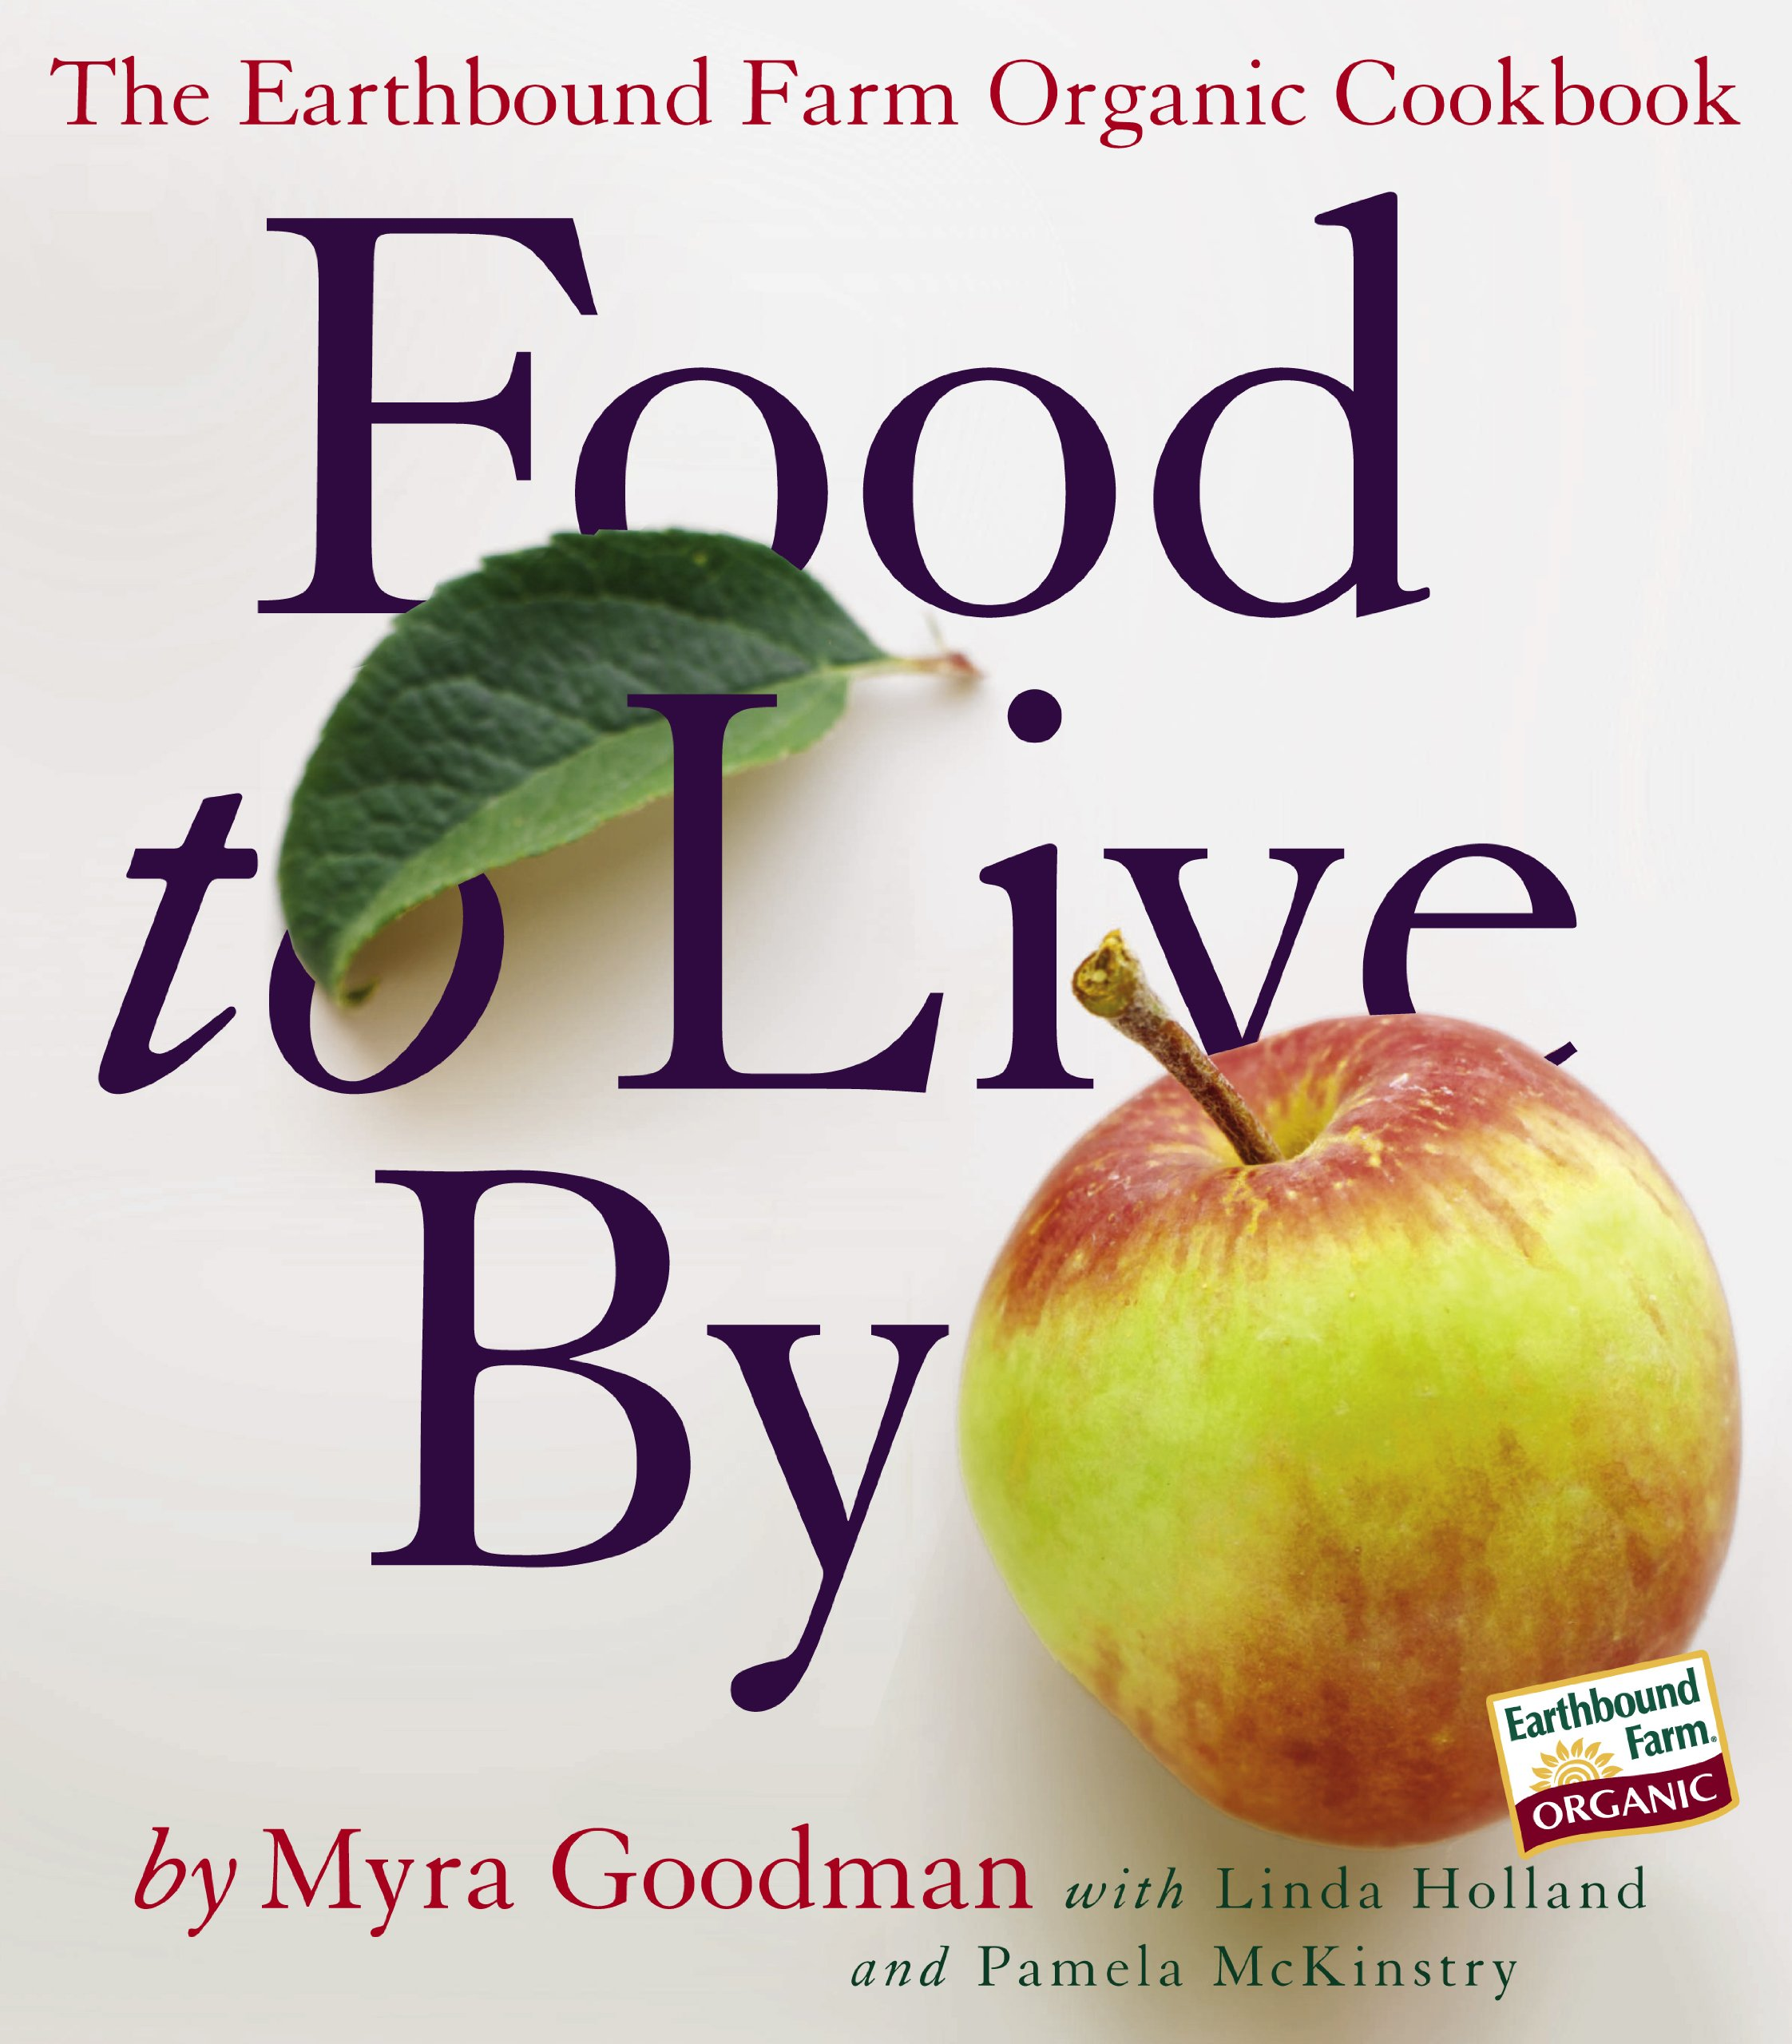 Food to live by the earthbound farm organic cookbook myra goodman food to live by the earthbound farm organic cookbook myra goodman linda holland pamela mckinstry 0019628138996 amazon books forumfinder Images